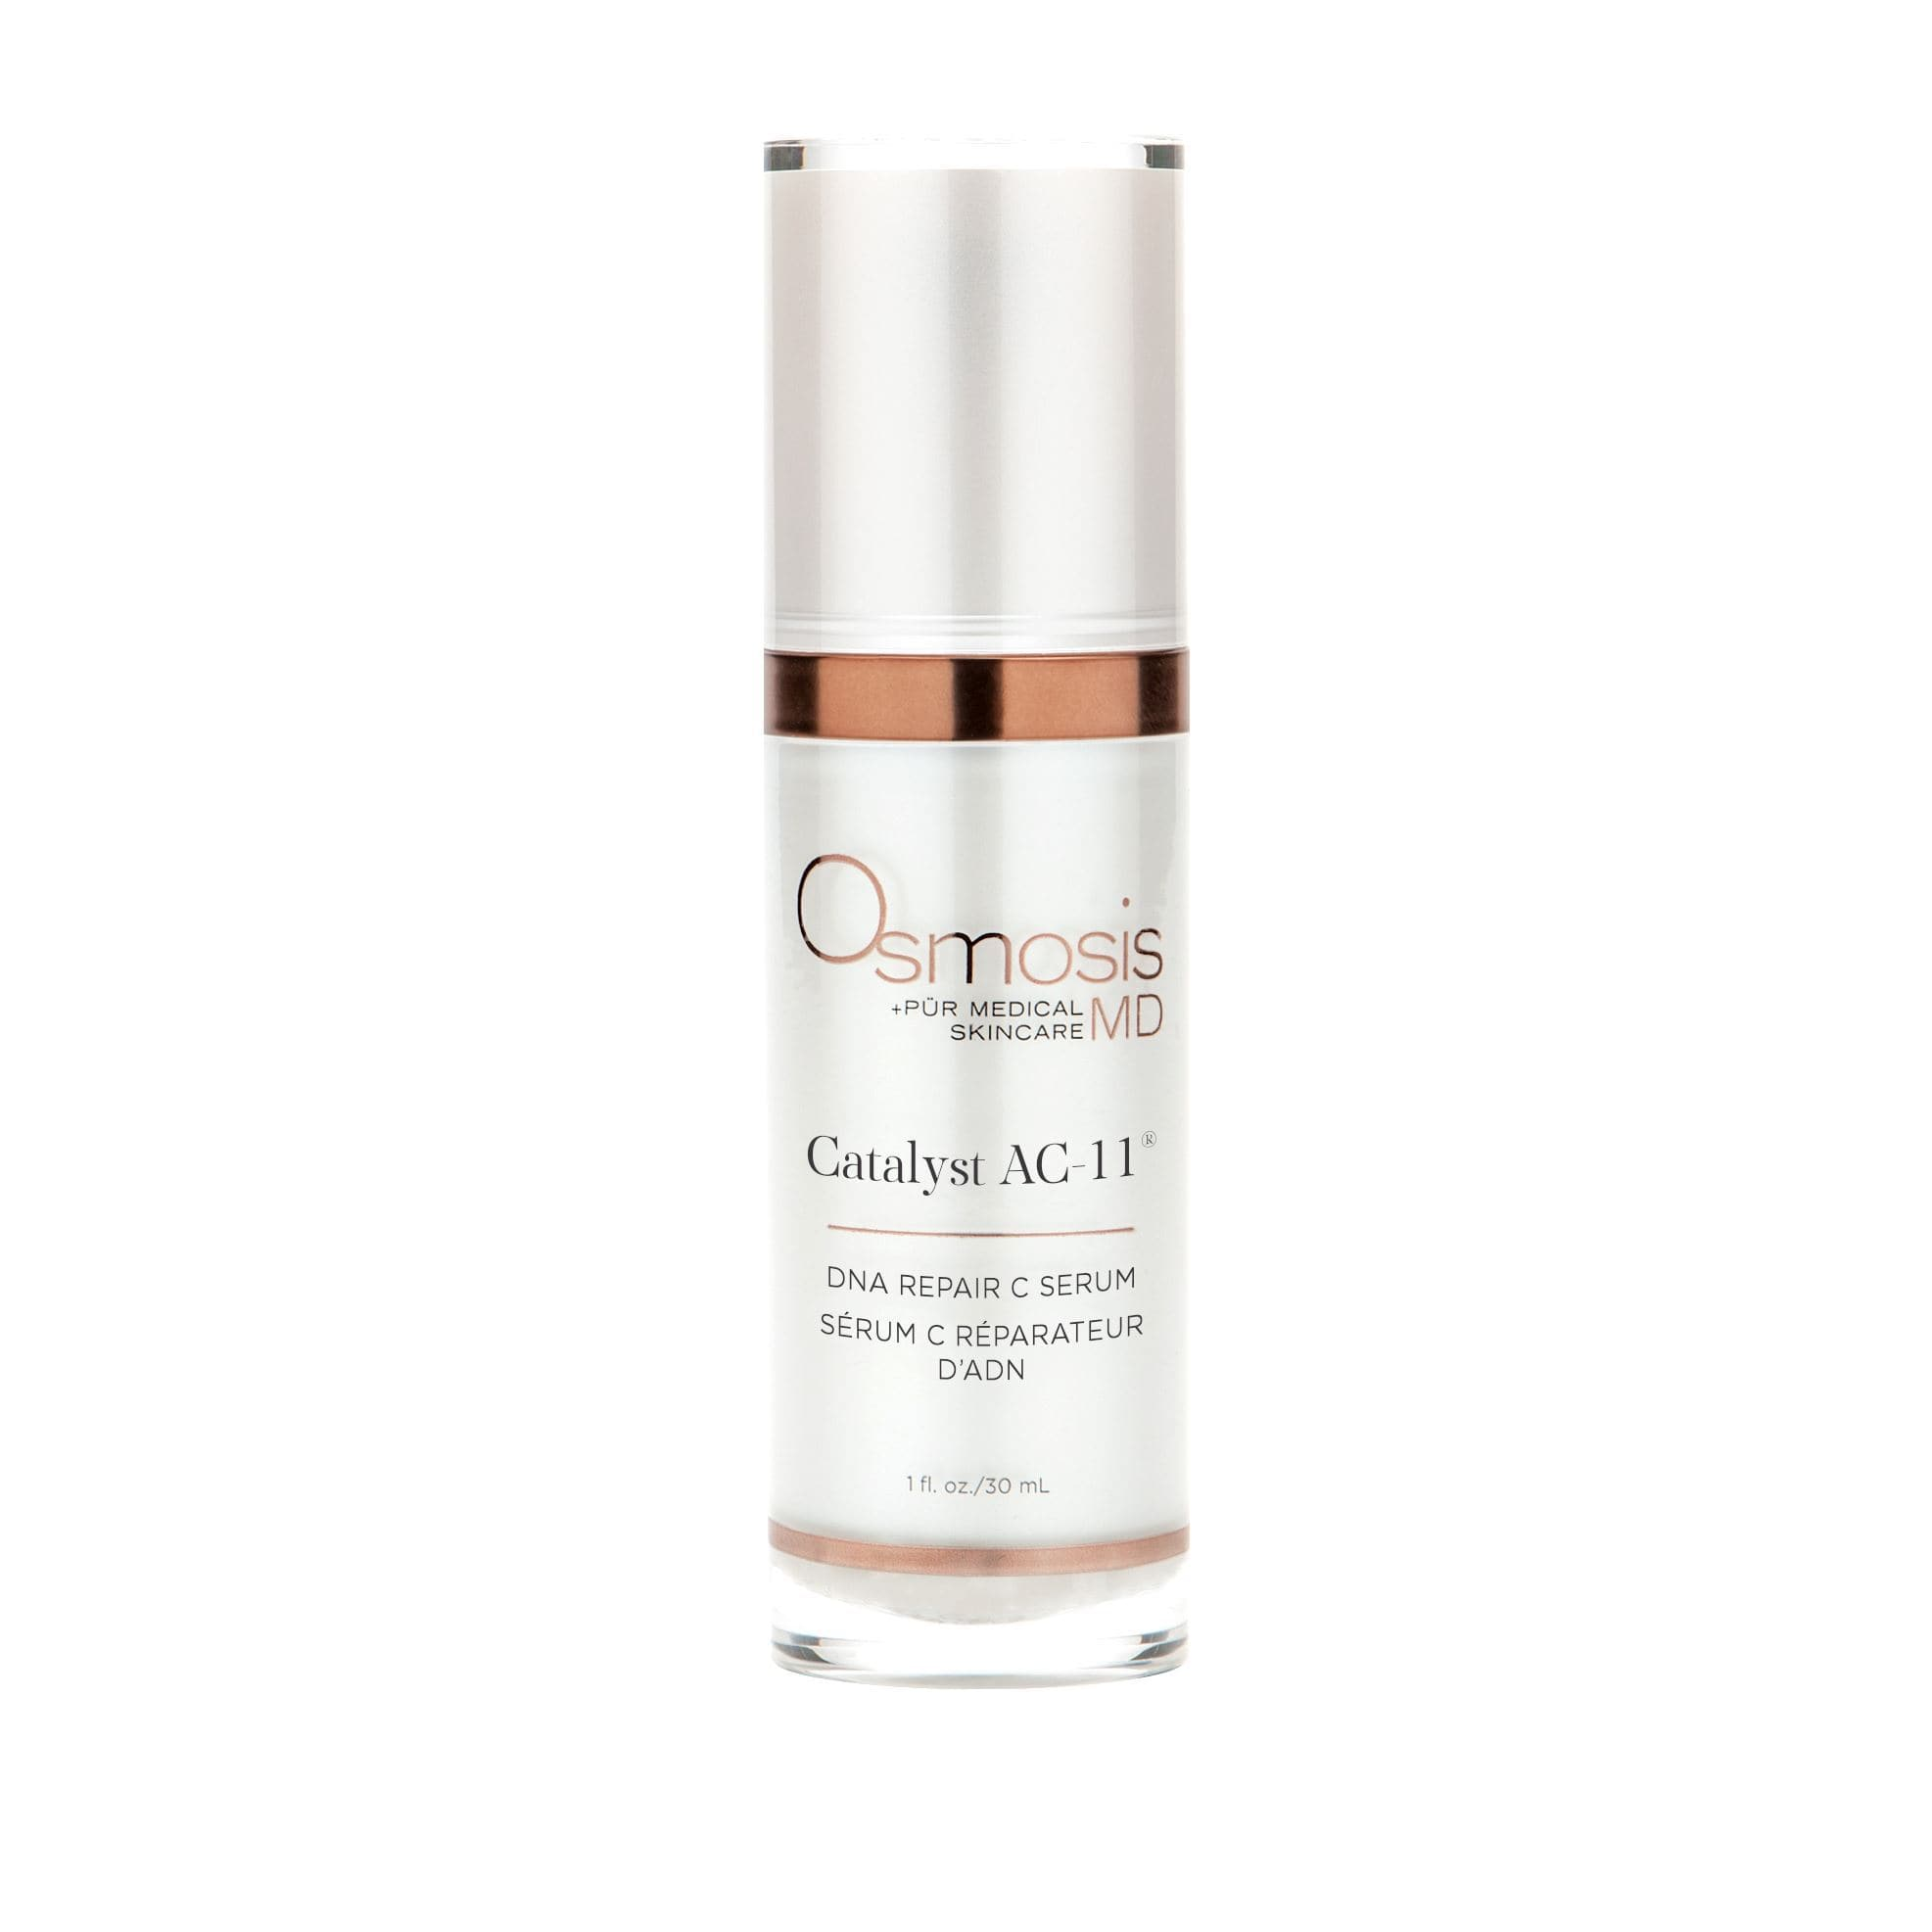 Osmosis MD Catalyst AC 11 DNA Repair Serum